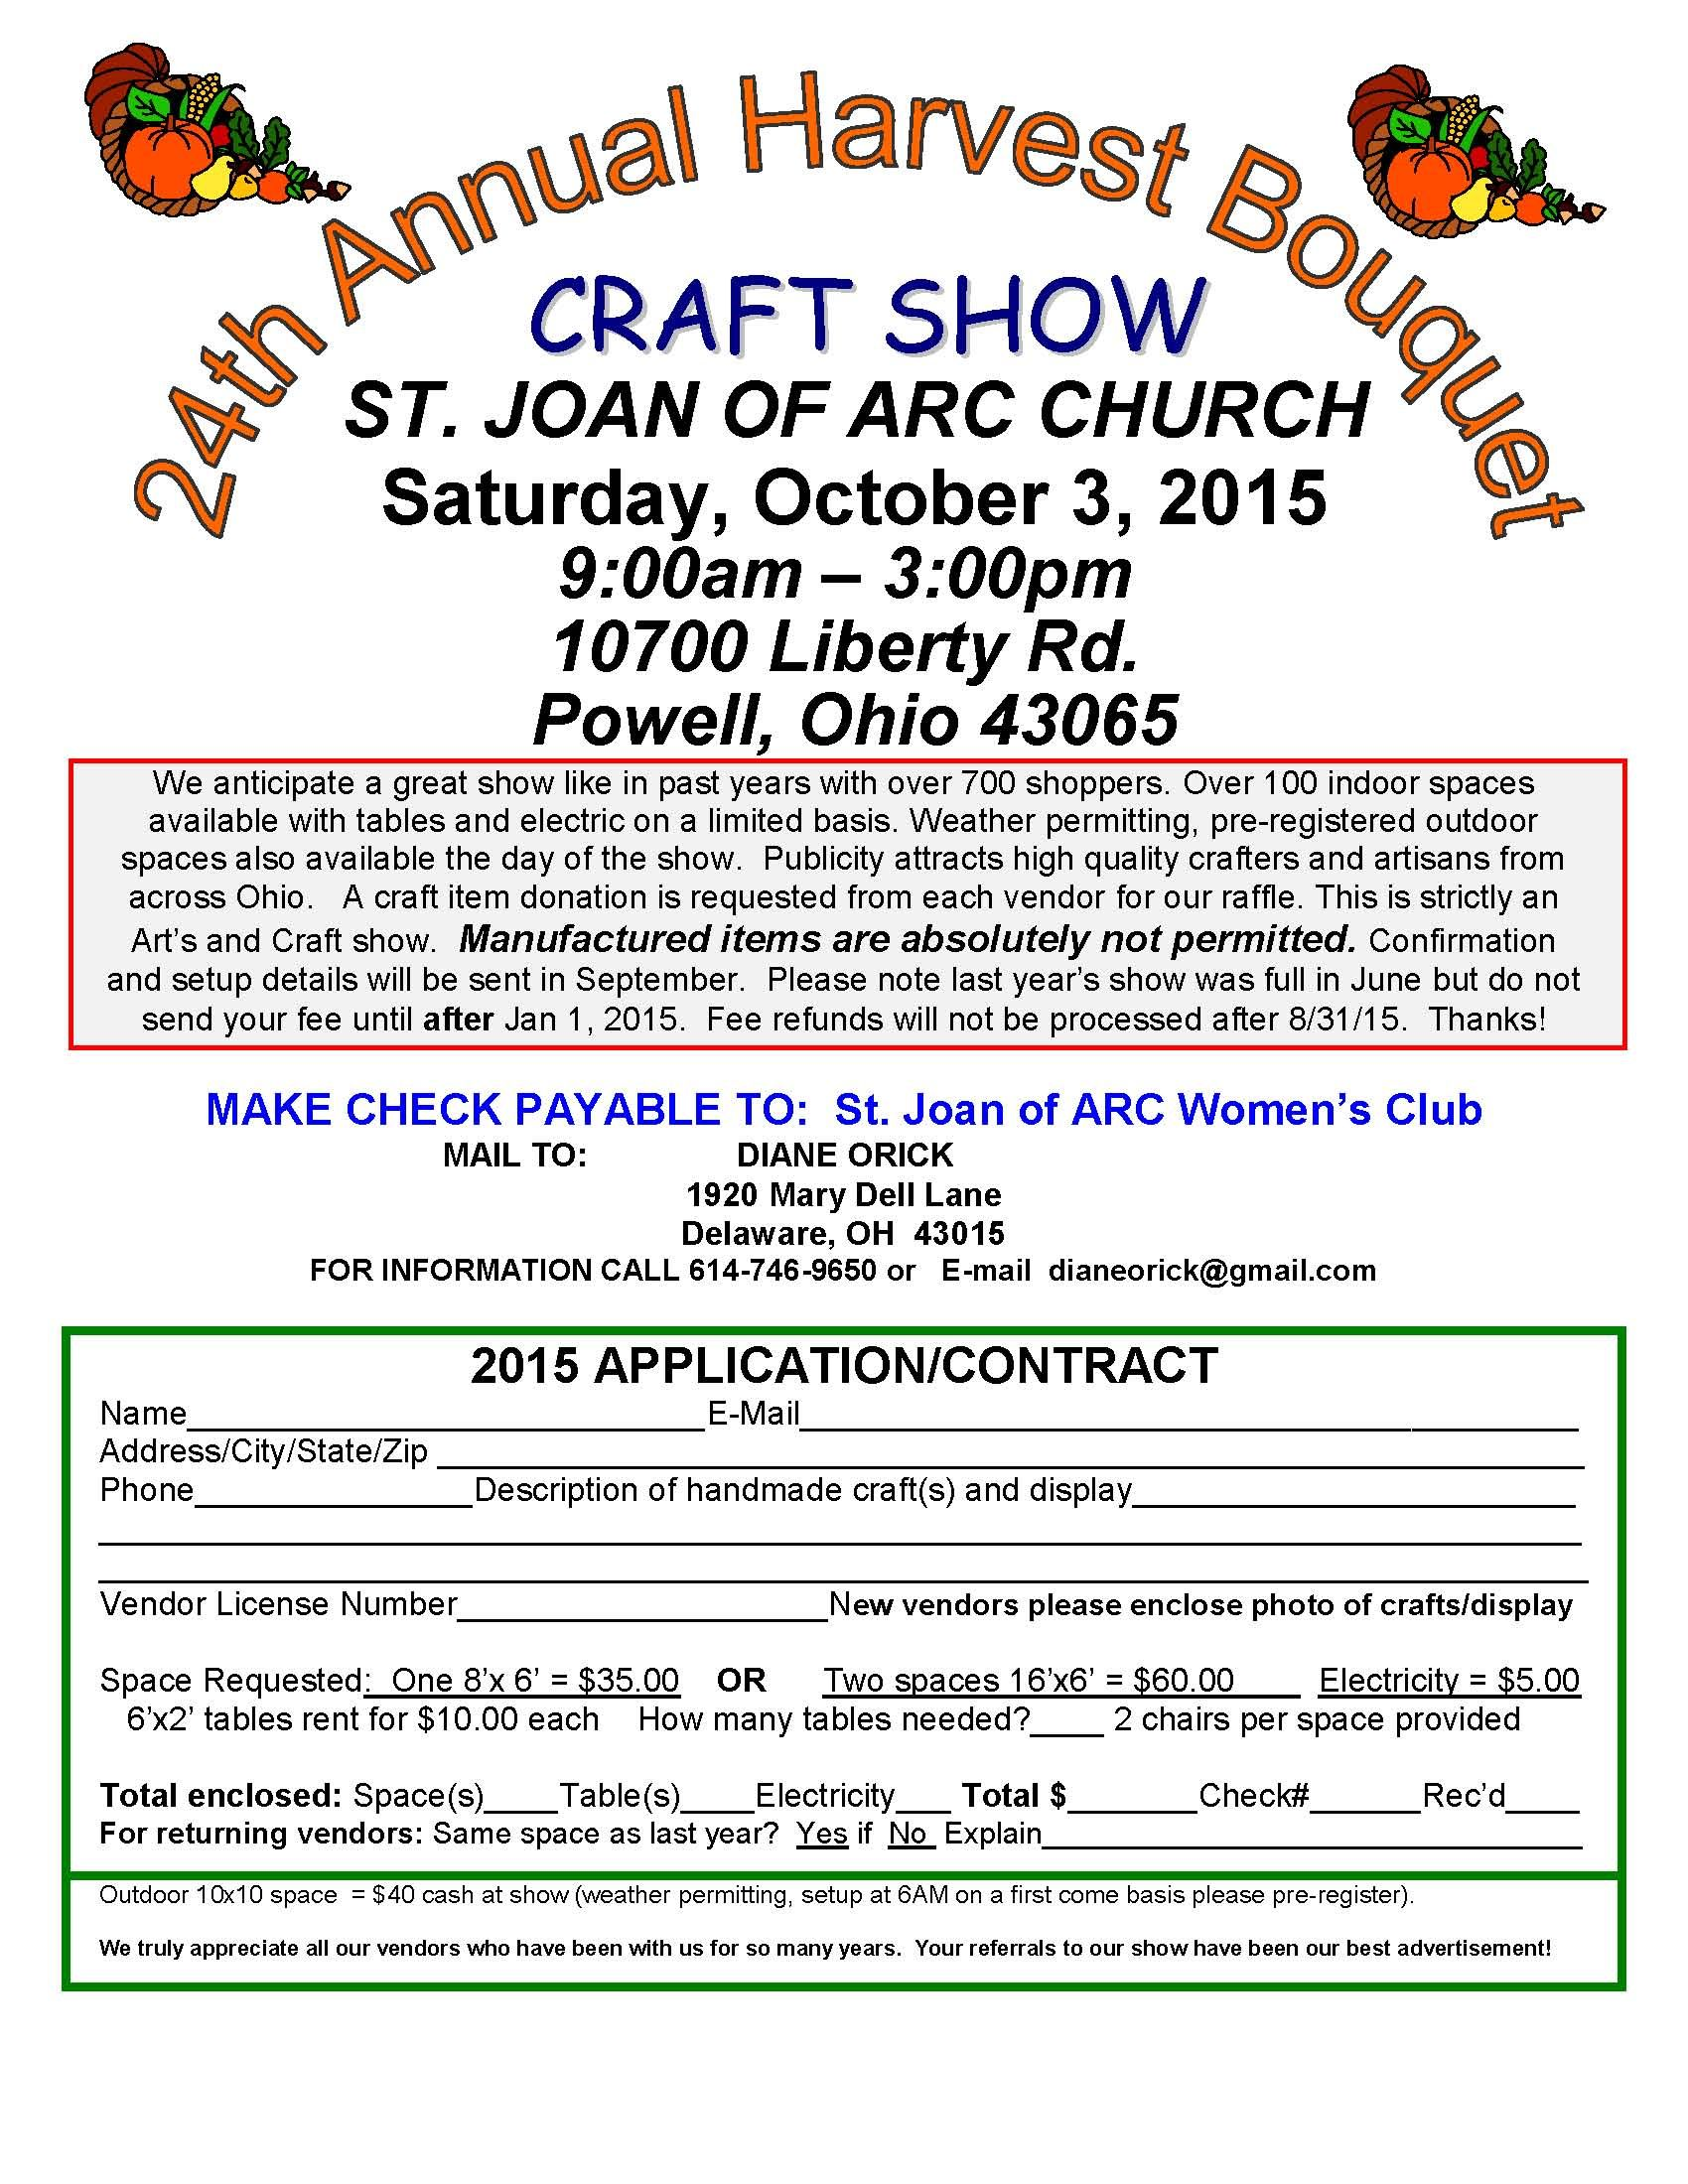 craft show vendor app 2015 pop up shop pinterest craft